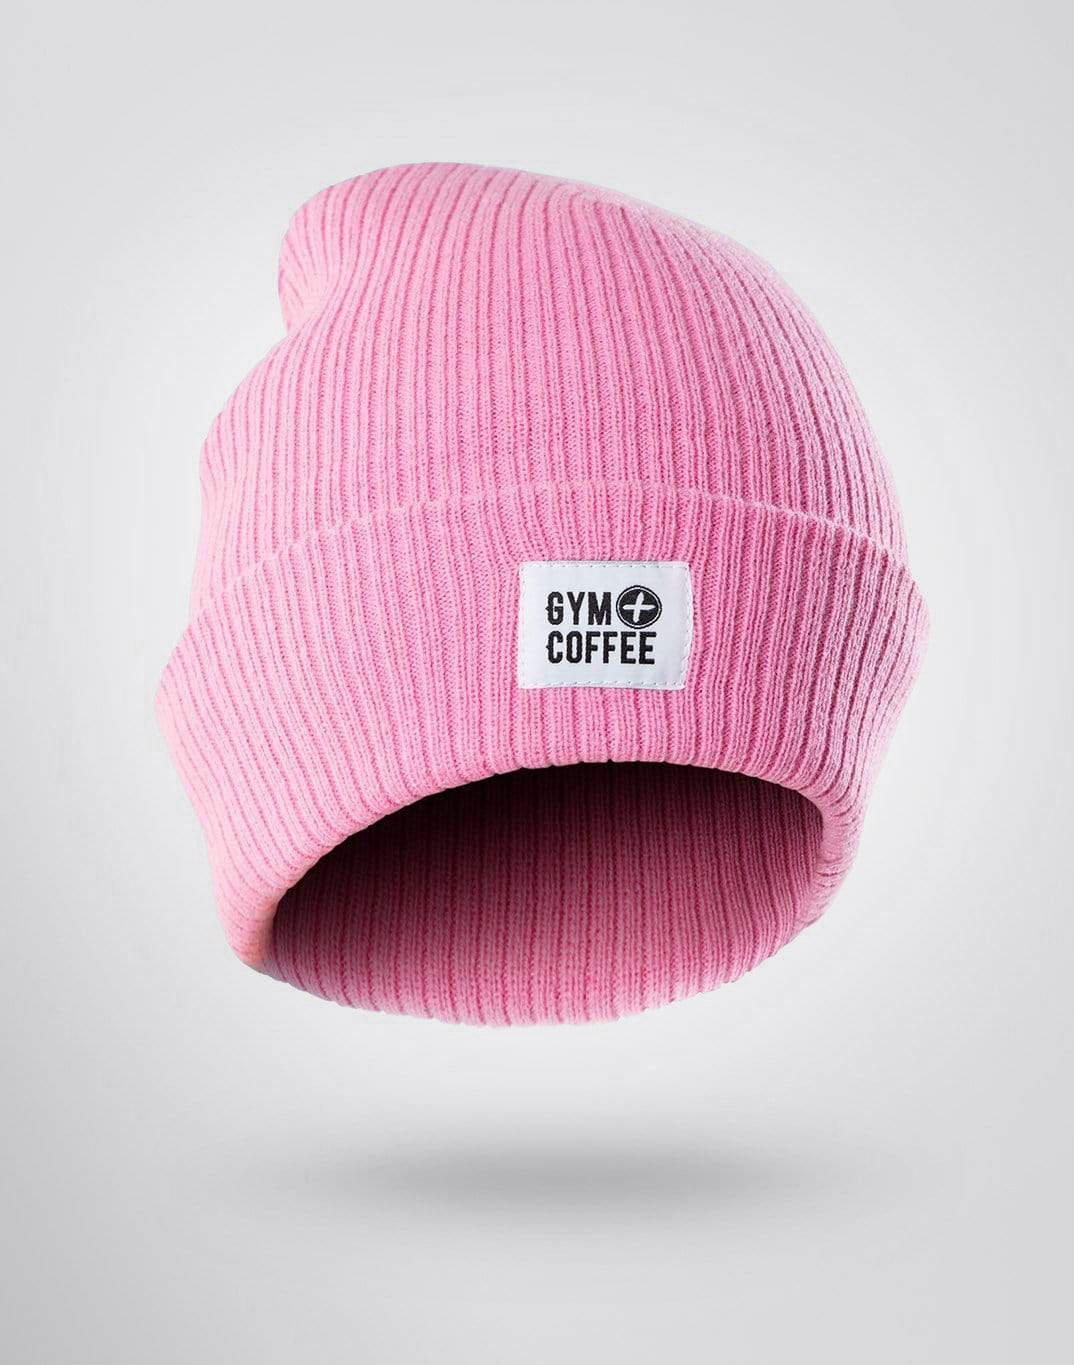 Gym Plus Coffee Beanie Pink Beanie Designed in Ireland